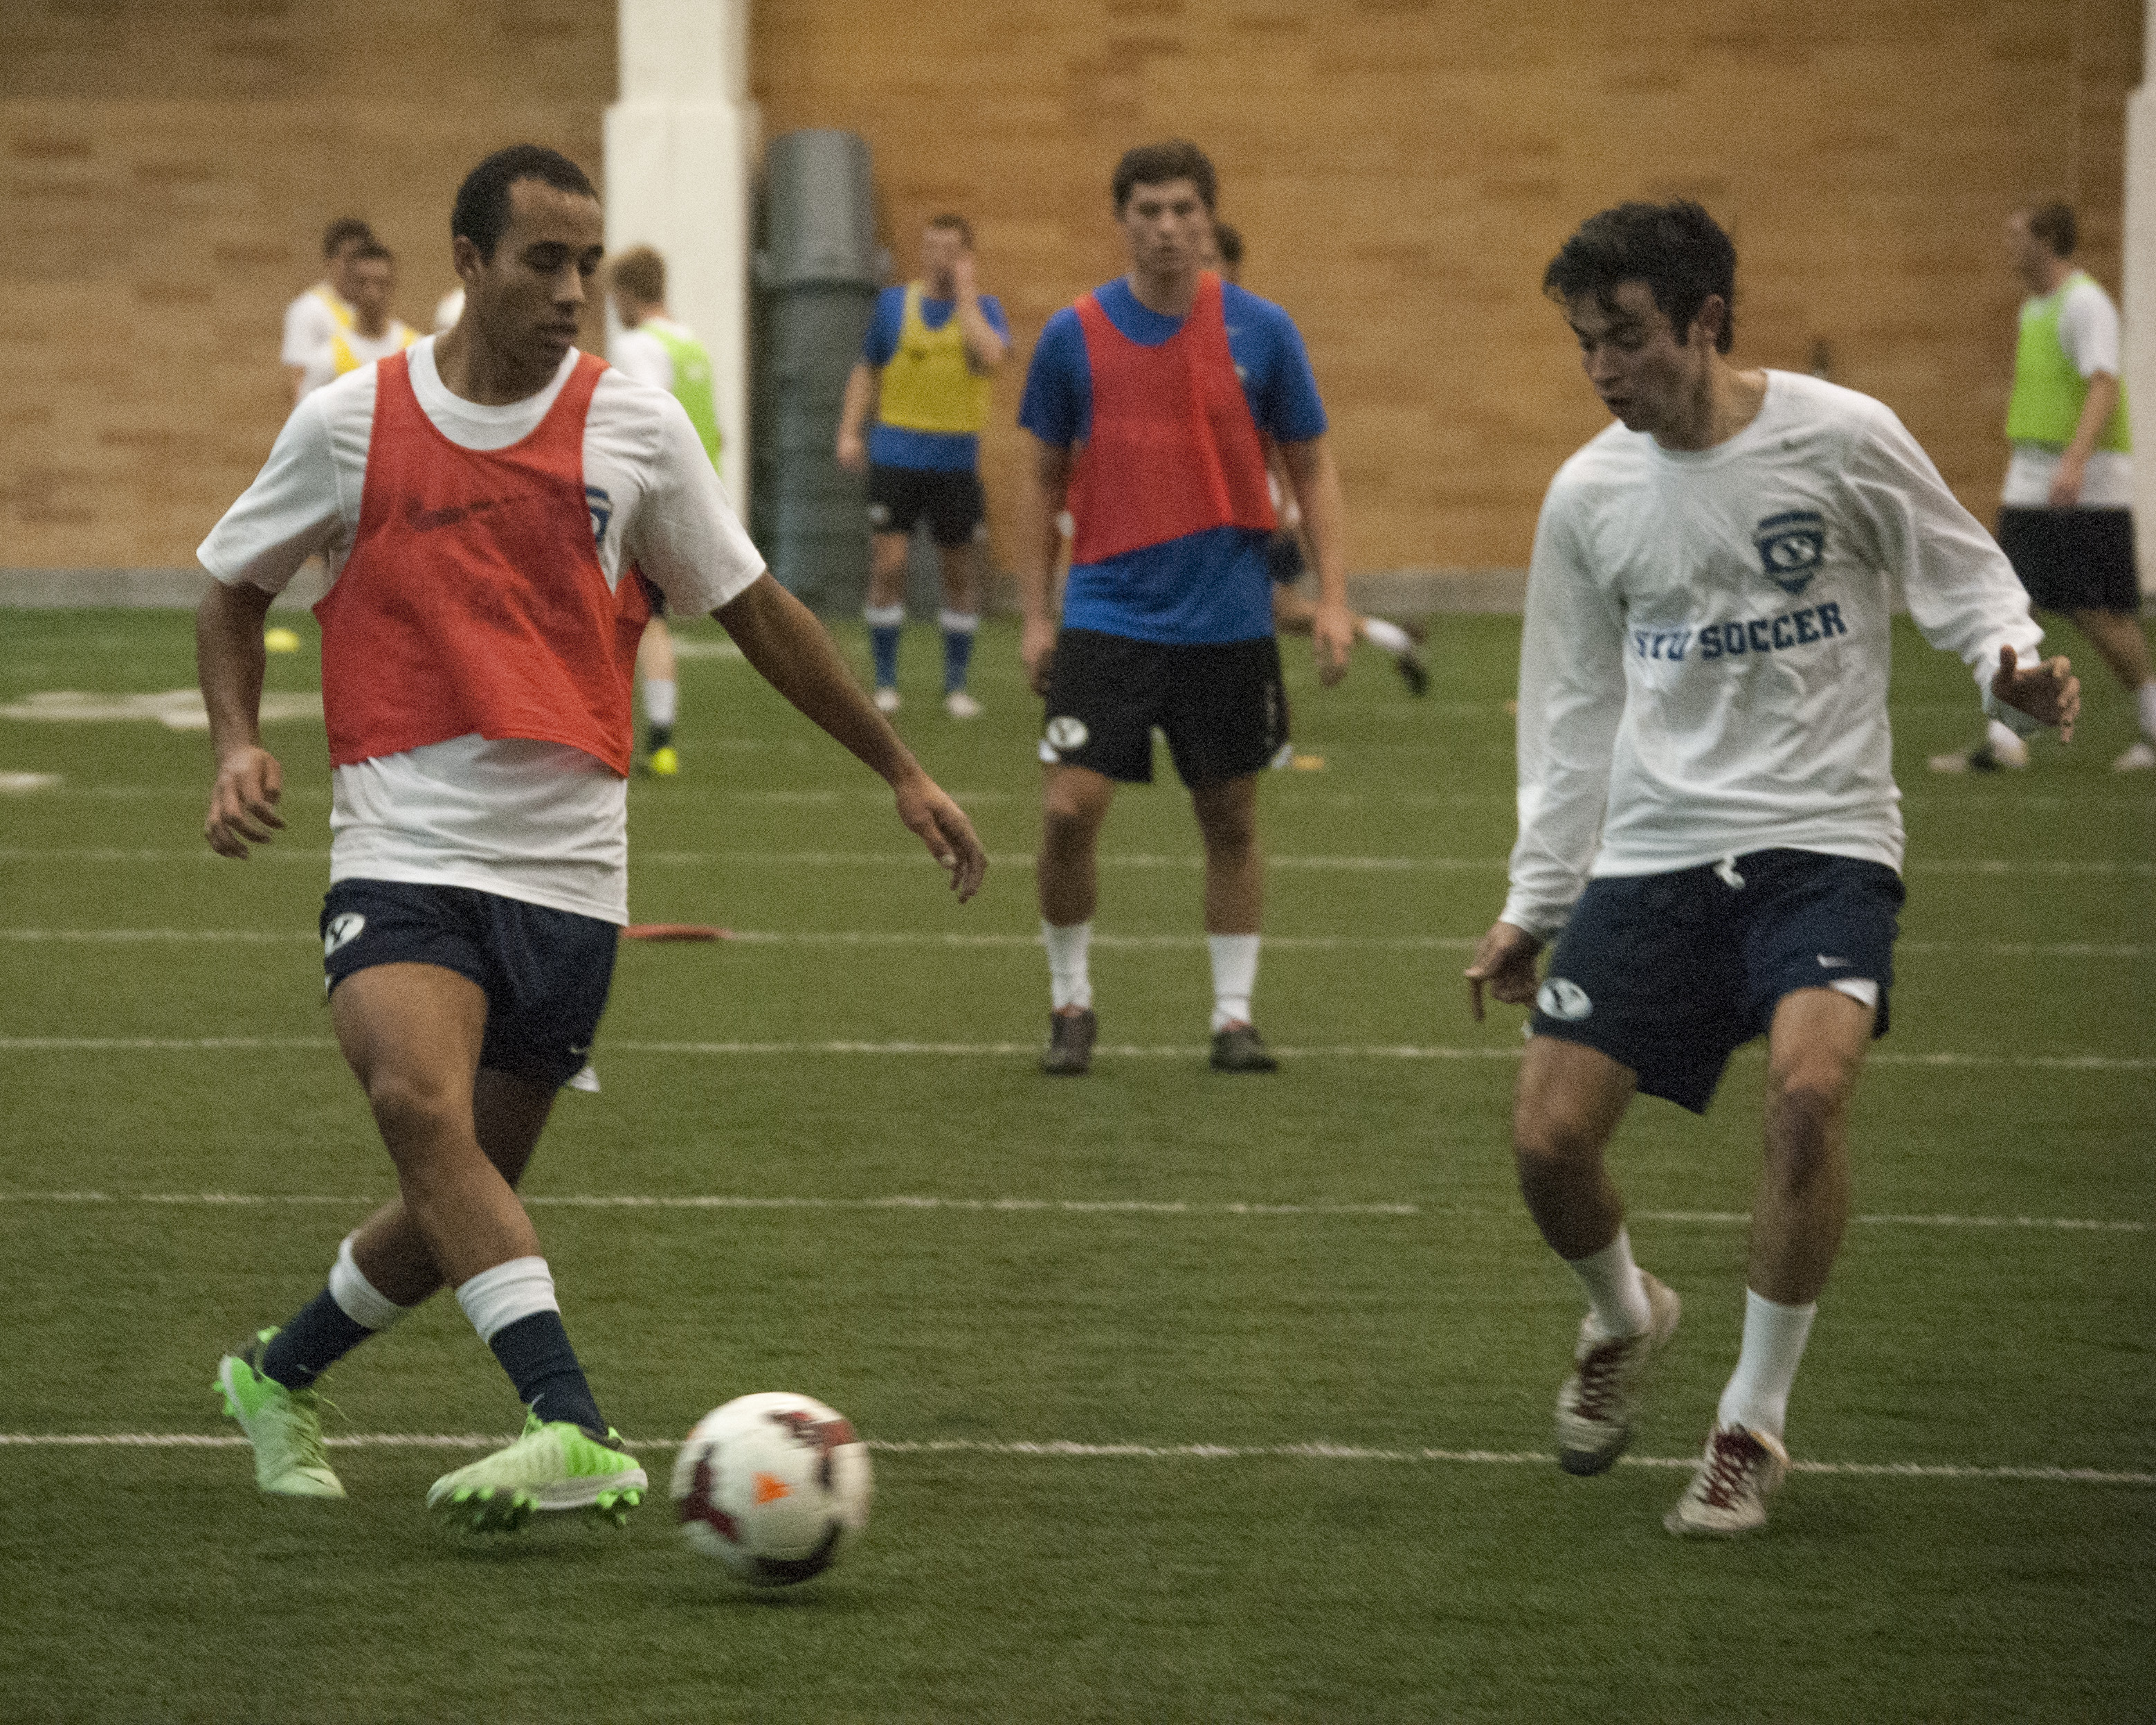 BYU Men's soccer players Junior Lartey (left) and Pedro Vasoncelos practice for their upcoming season. Photo by Maddi Dayton